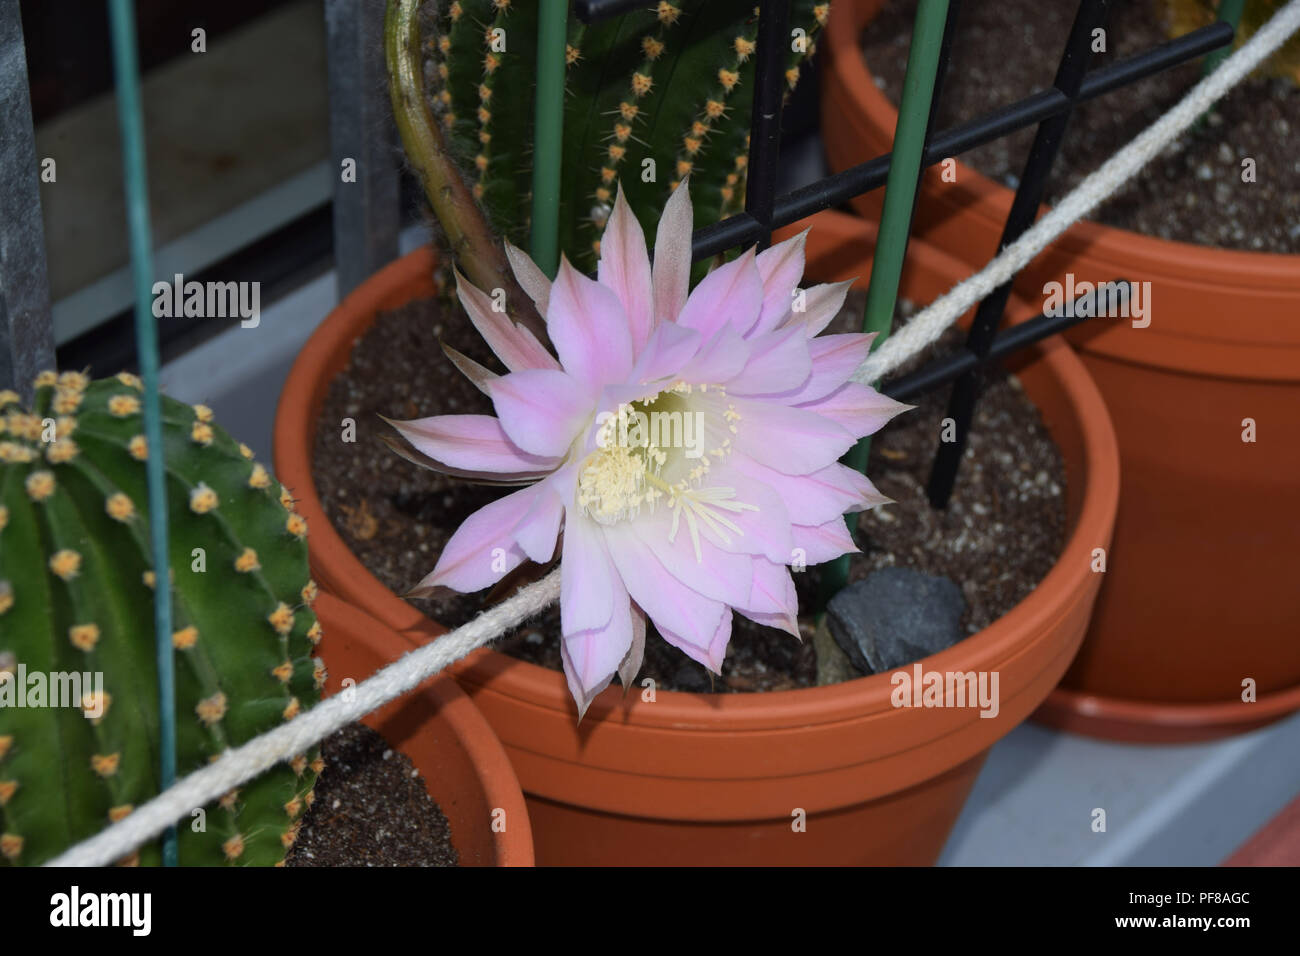 hedgehog cacti in pink bloom in clay pots with sandy soil, Echinopsis spachiana during flowering also called queen of the night flowers - Stock Image